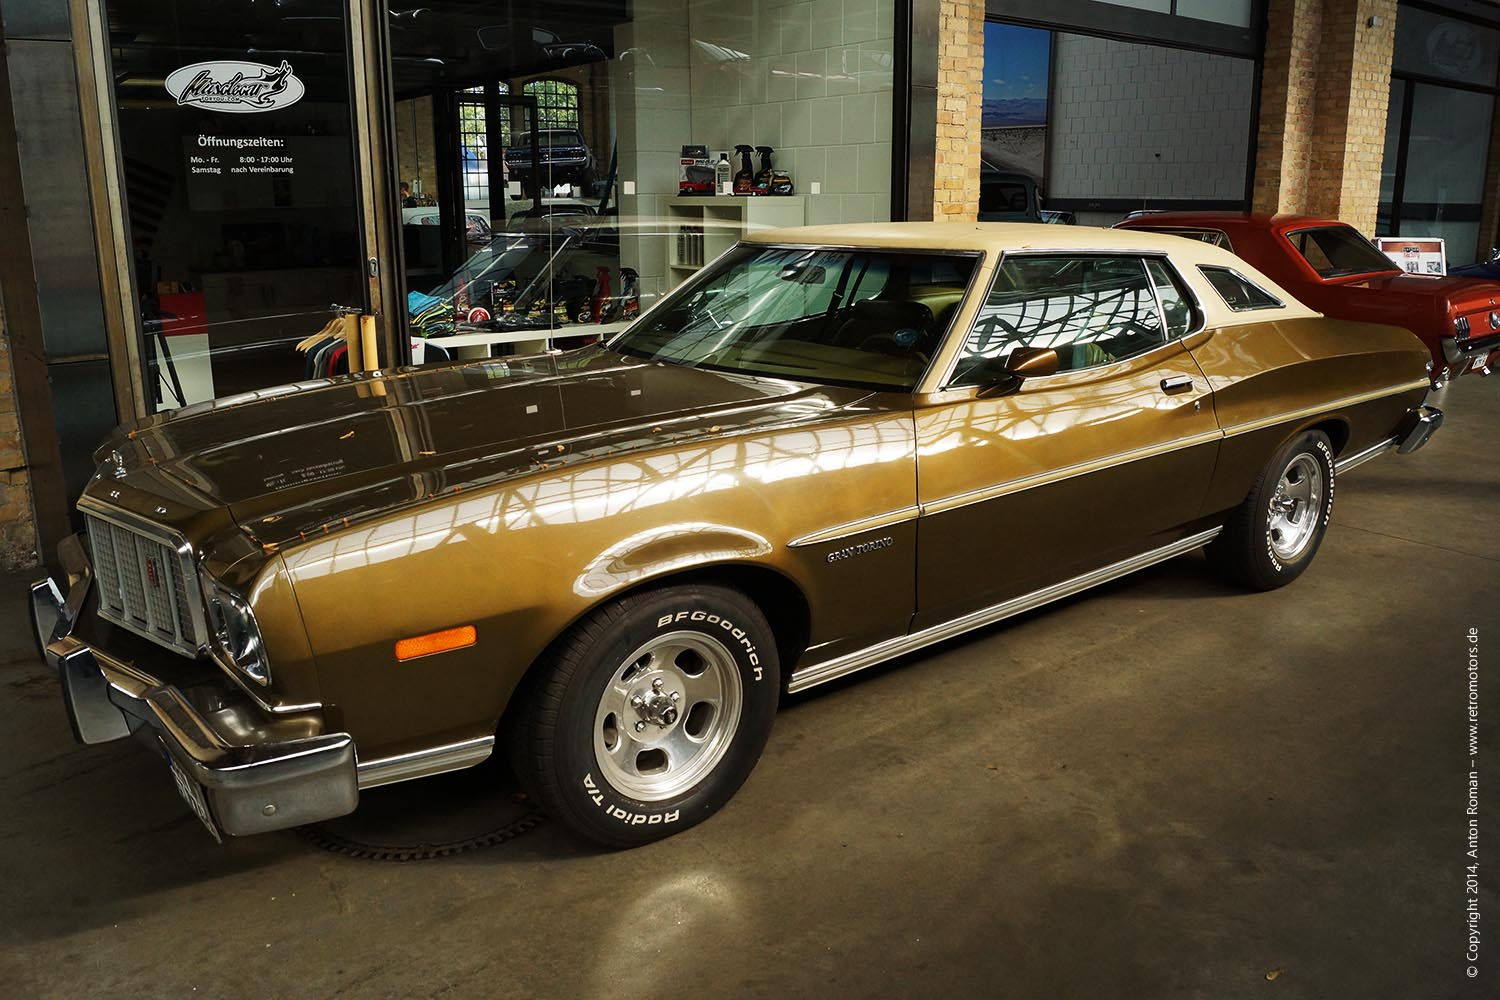 1974 Ford Gran Torino Brougham Retromotors Wir Lieben Autos 1964 Grand